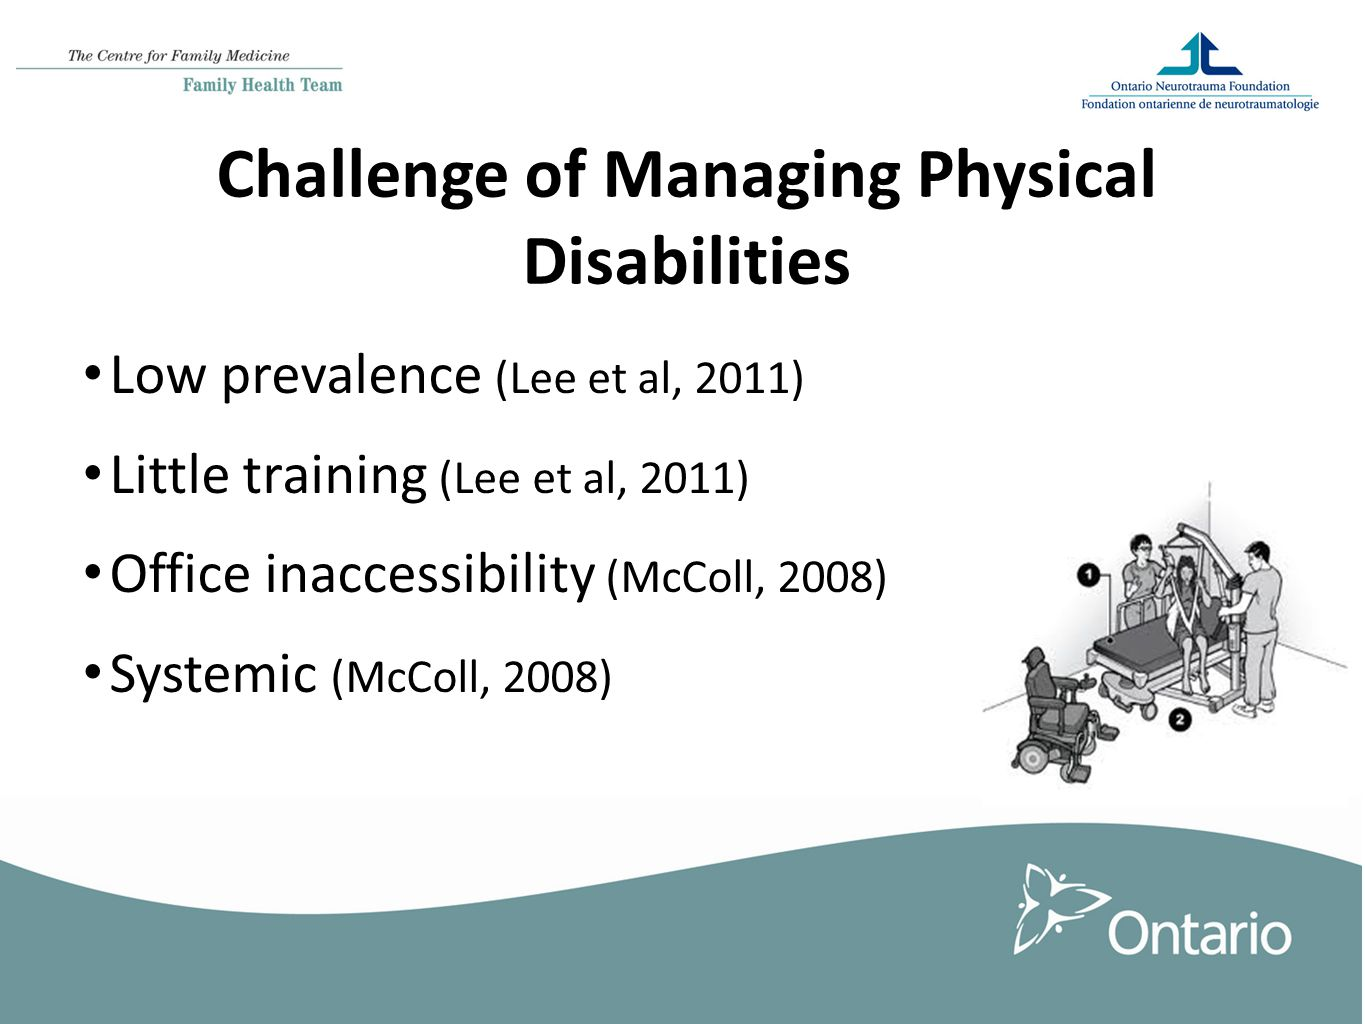 Challenge of Managing Physical Disabilities Low prevalence (Lee et al, 2011) Little training (Lee et al, 2011) Office inaccessibility (McColl, 2008) Systemic (McColl, 2008)